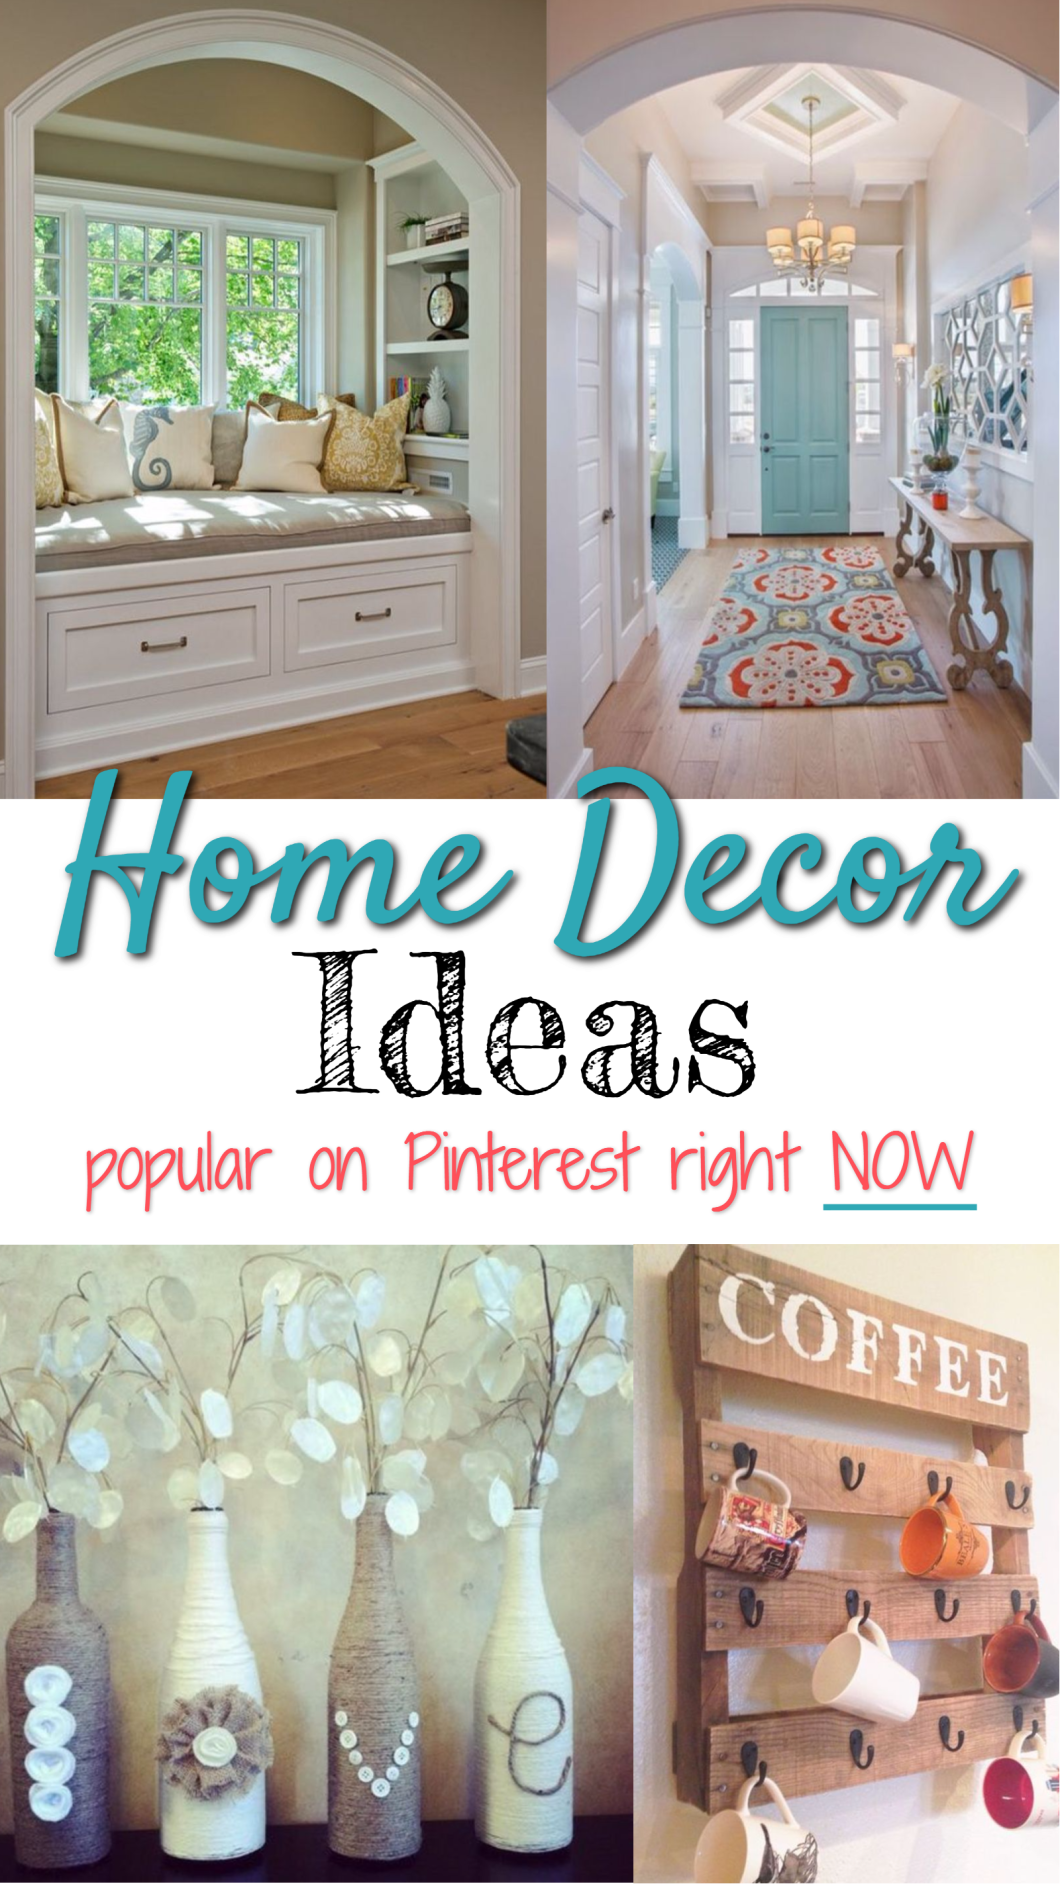 Going VIRAL on Pinterest right NOW - the most popular Home Decor pins on Pinterest with TONS of repins and crazy traffic.  If you're a blogger, these are great blog post ideas from @PotPieGirl